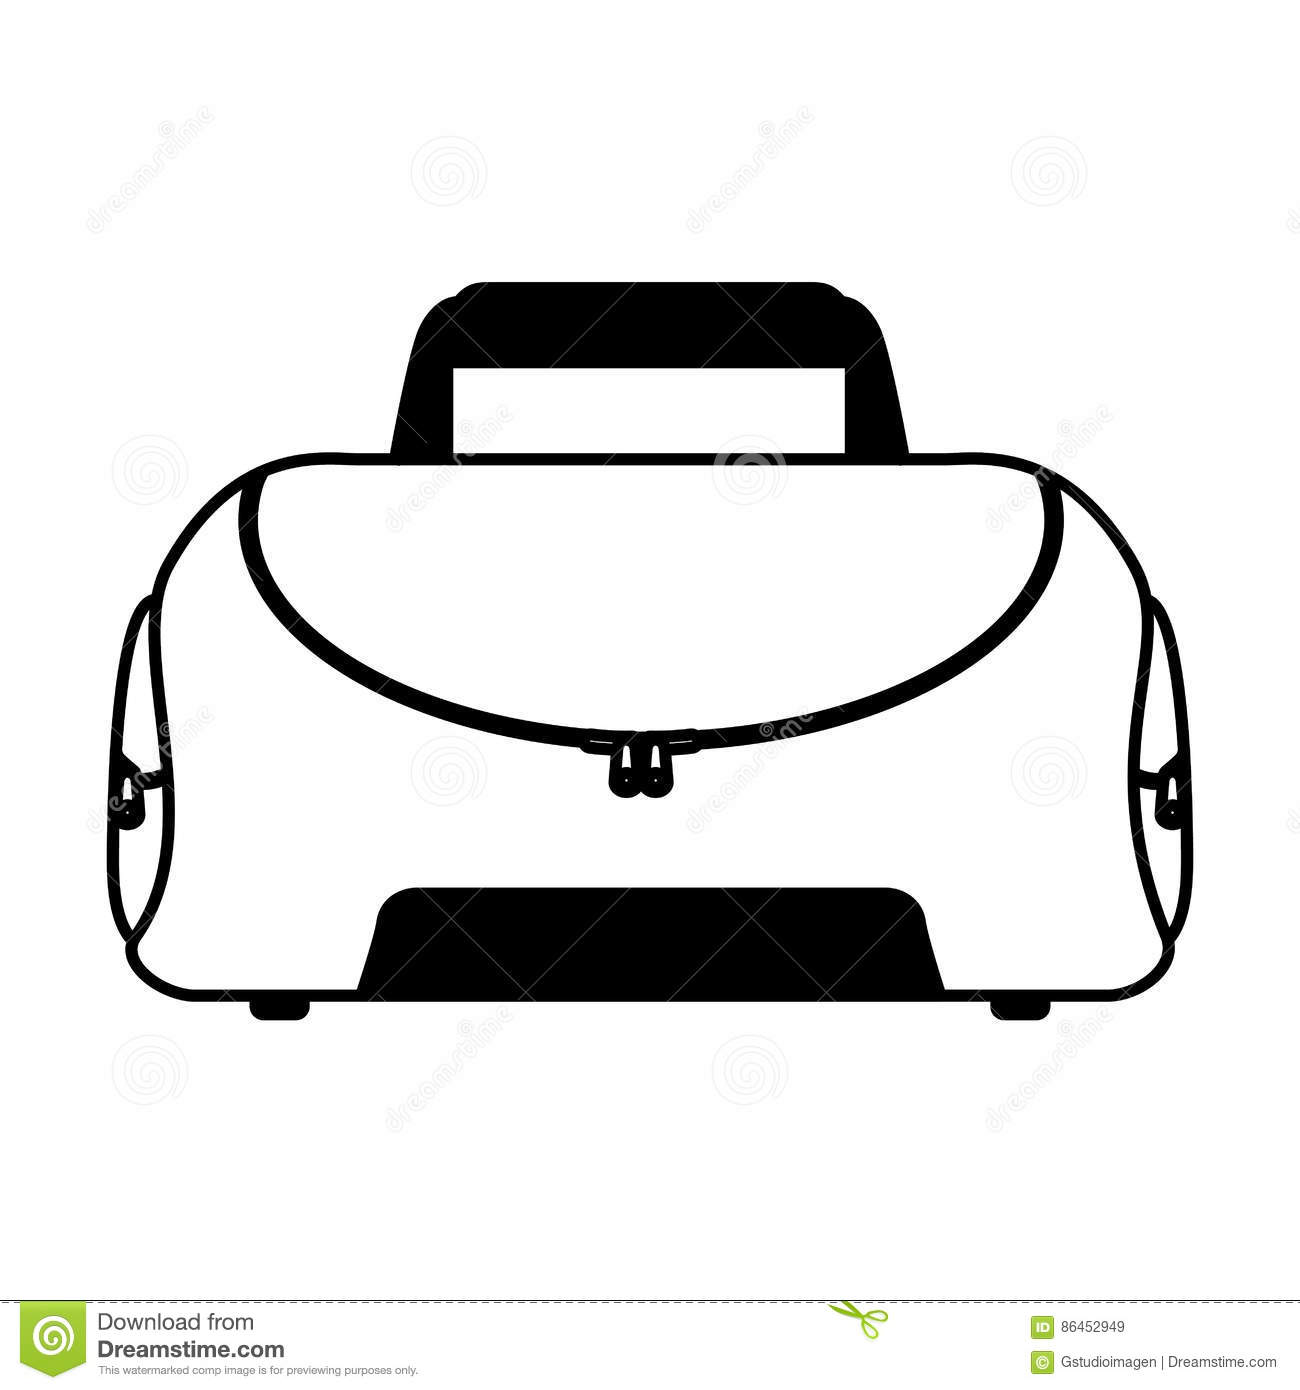 9b9f533c92 Sport Bag Gym Isolated Icon Stock Vector - Illustration of object ...